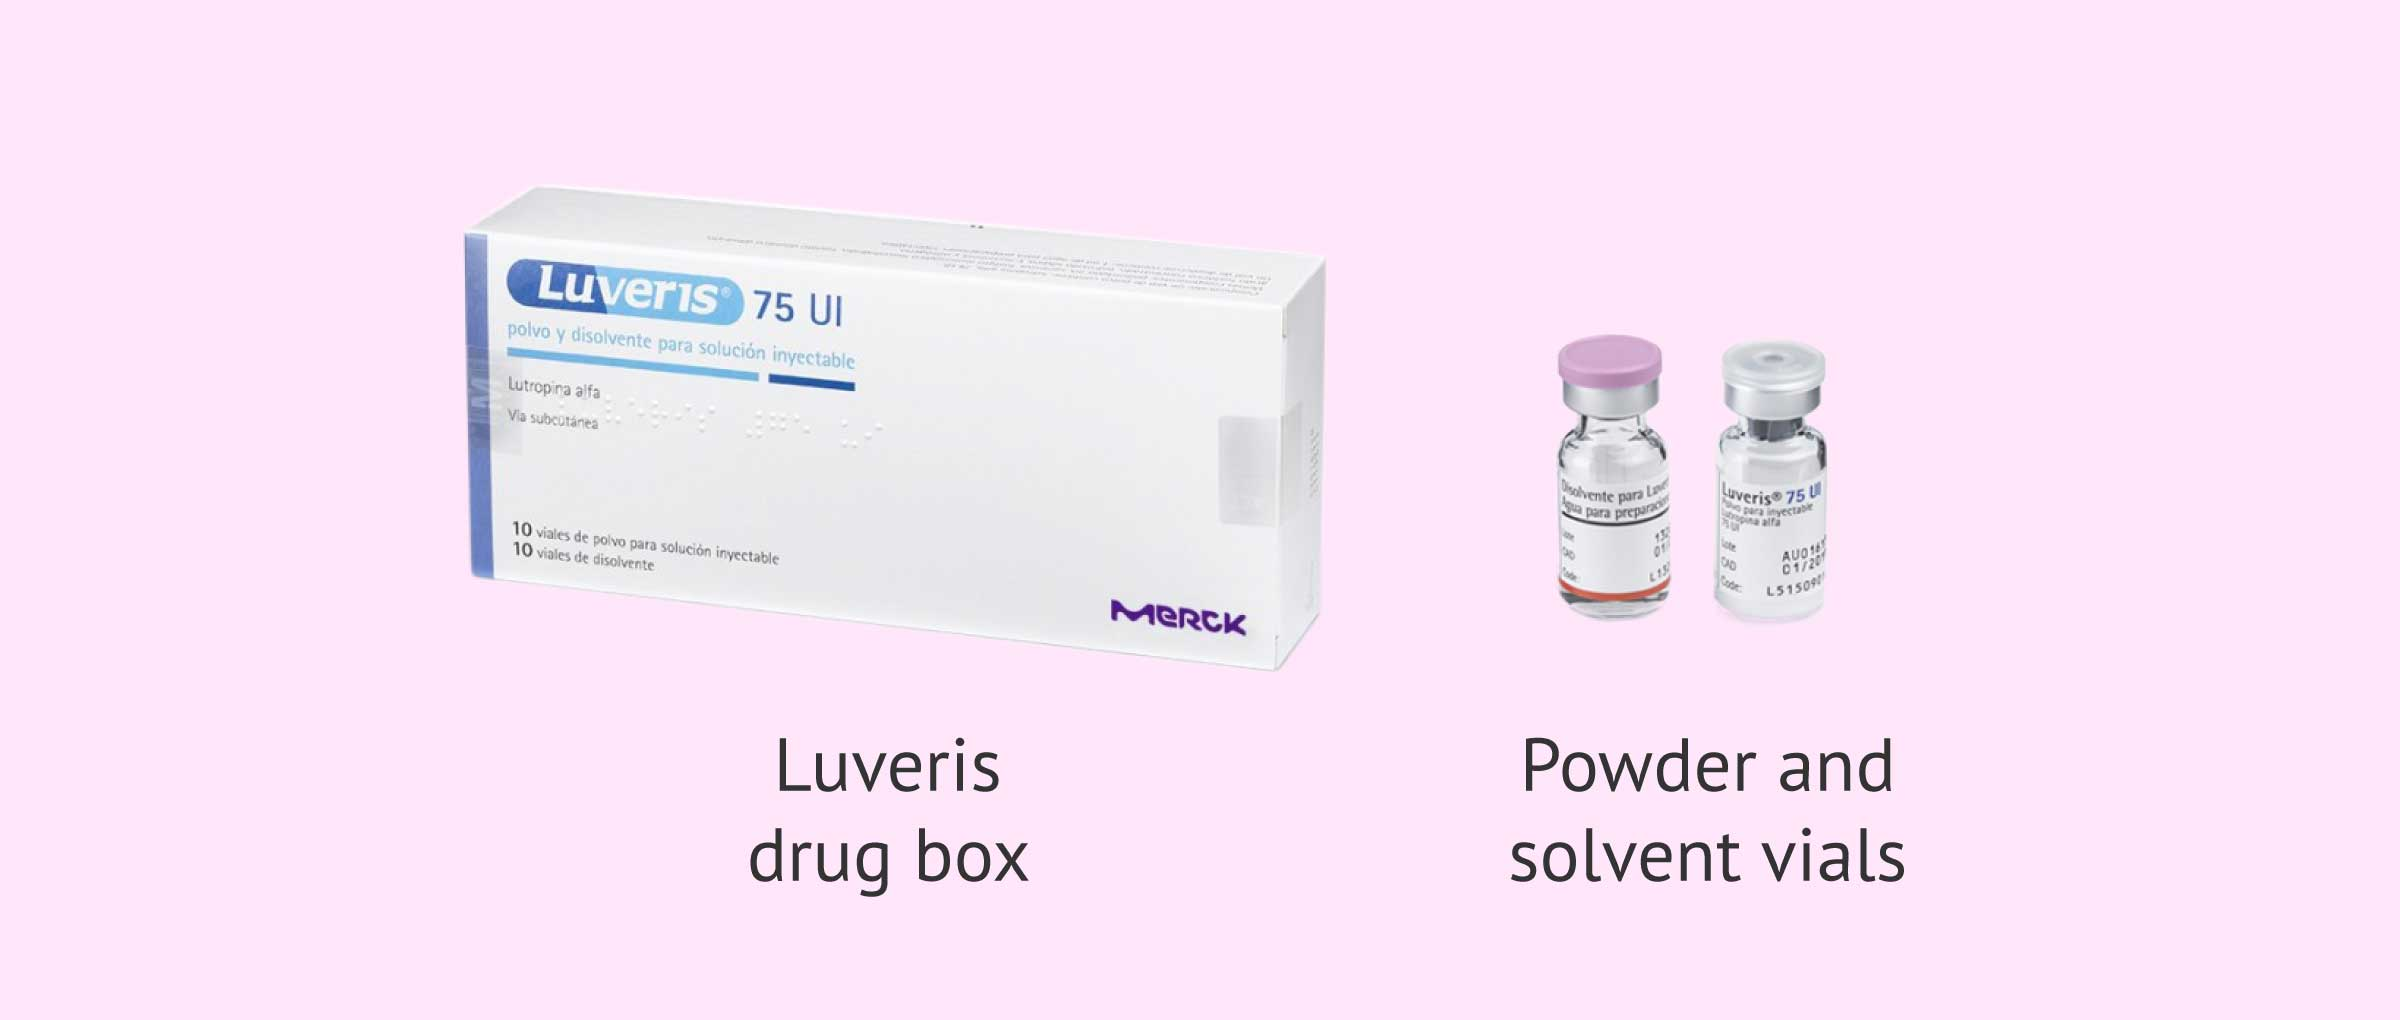 Luveris 75 IU in solution for injection